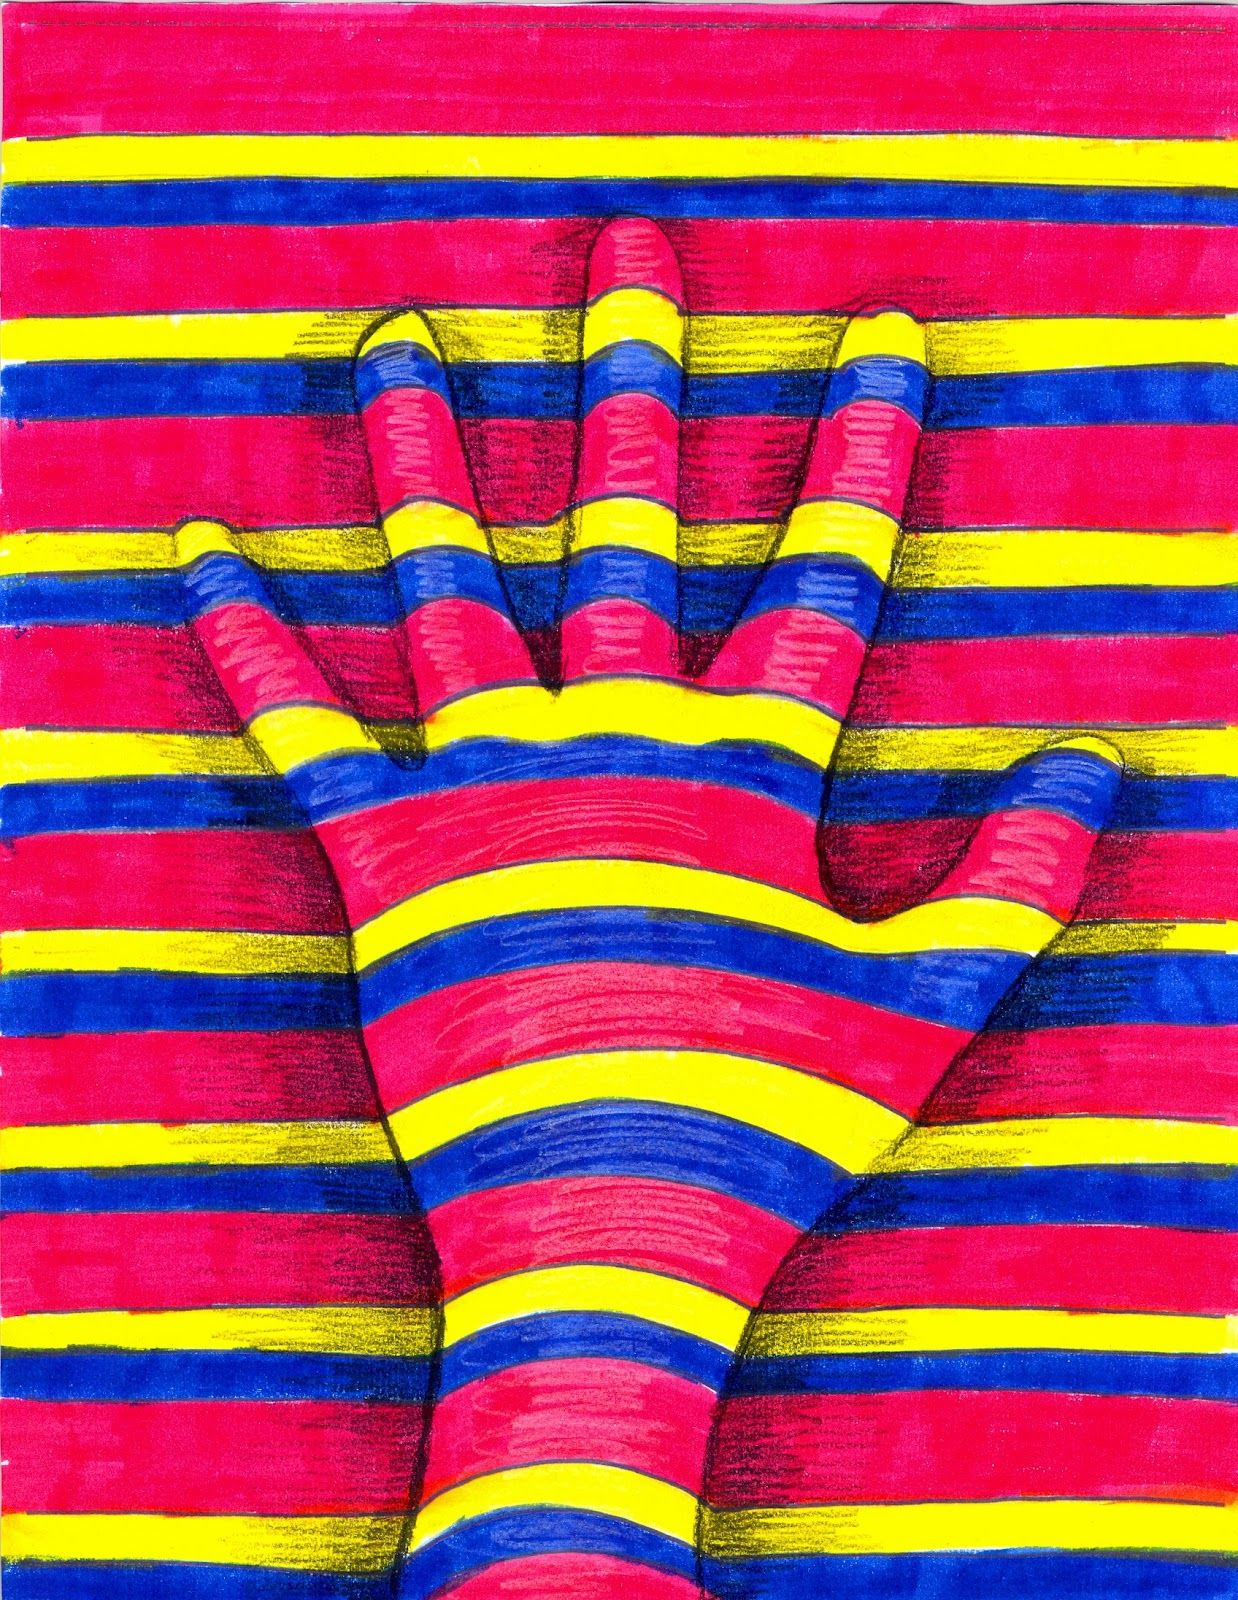 Op art uses color to create - The Lost Sock Art Elements Using Hands